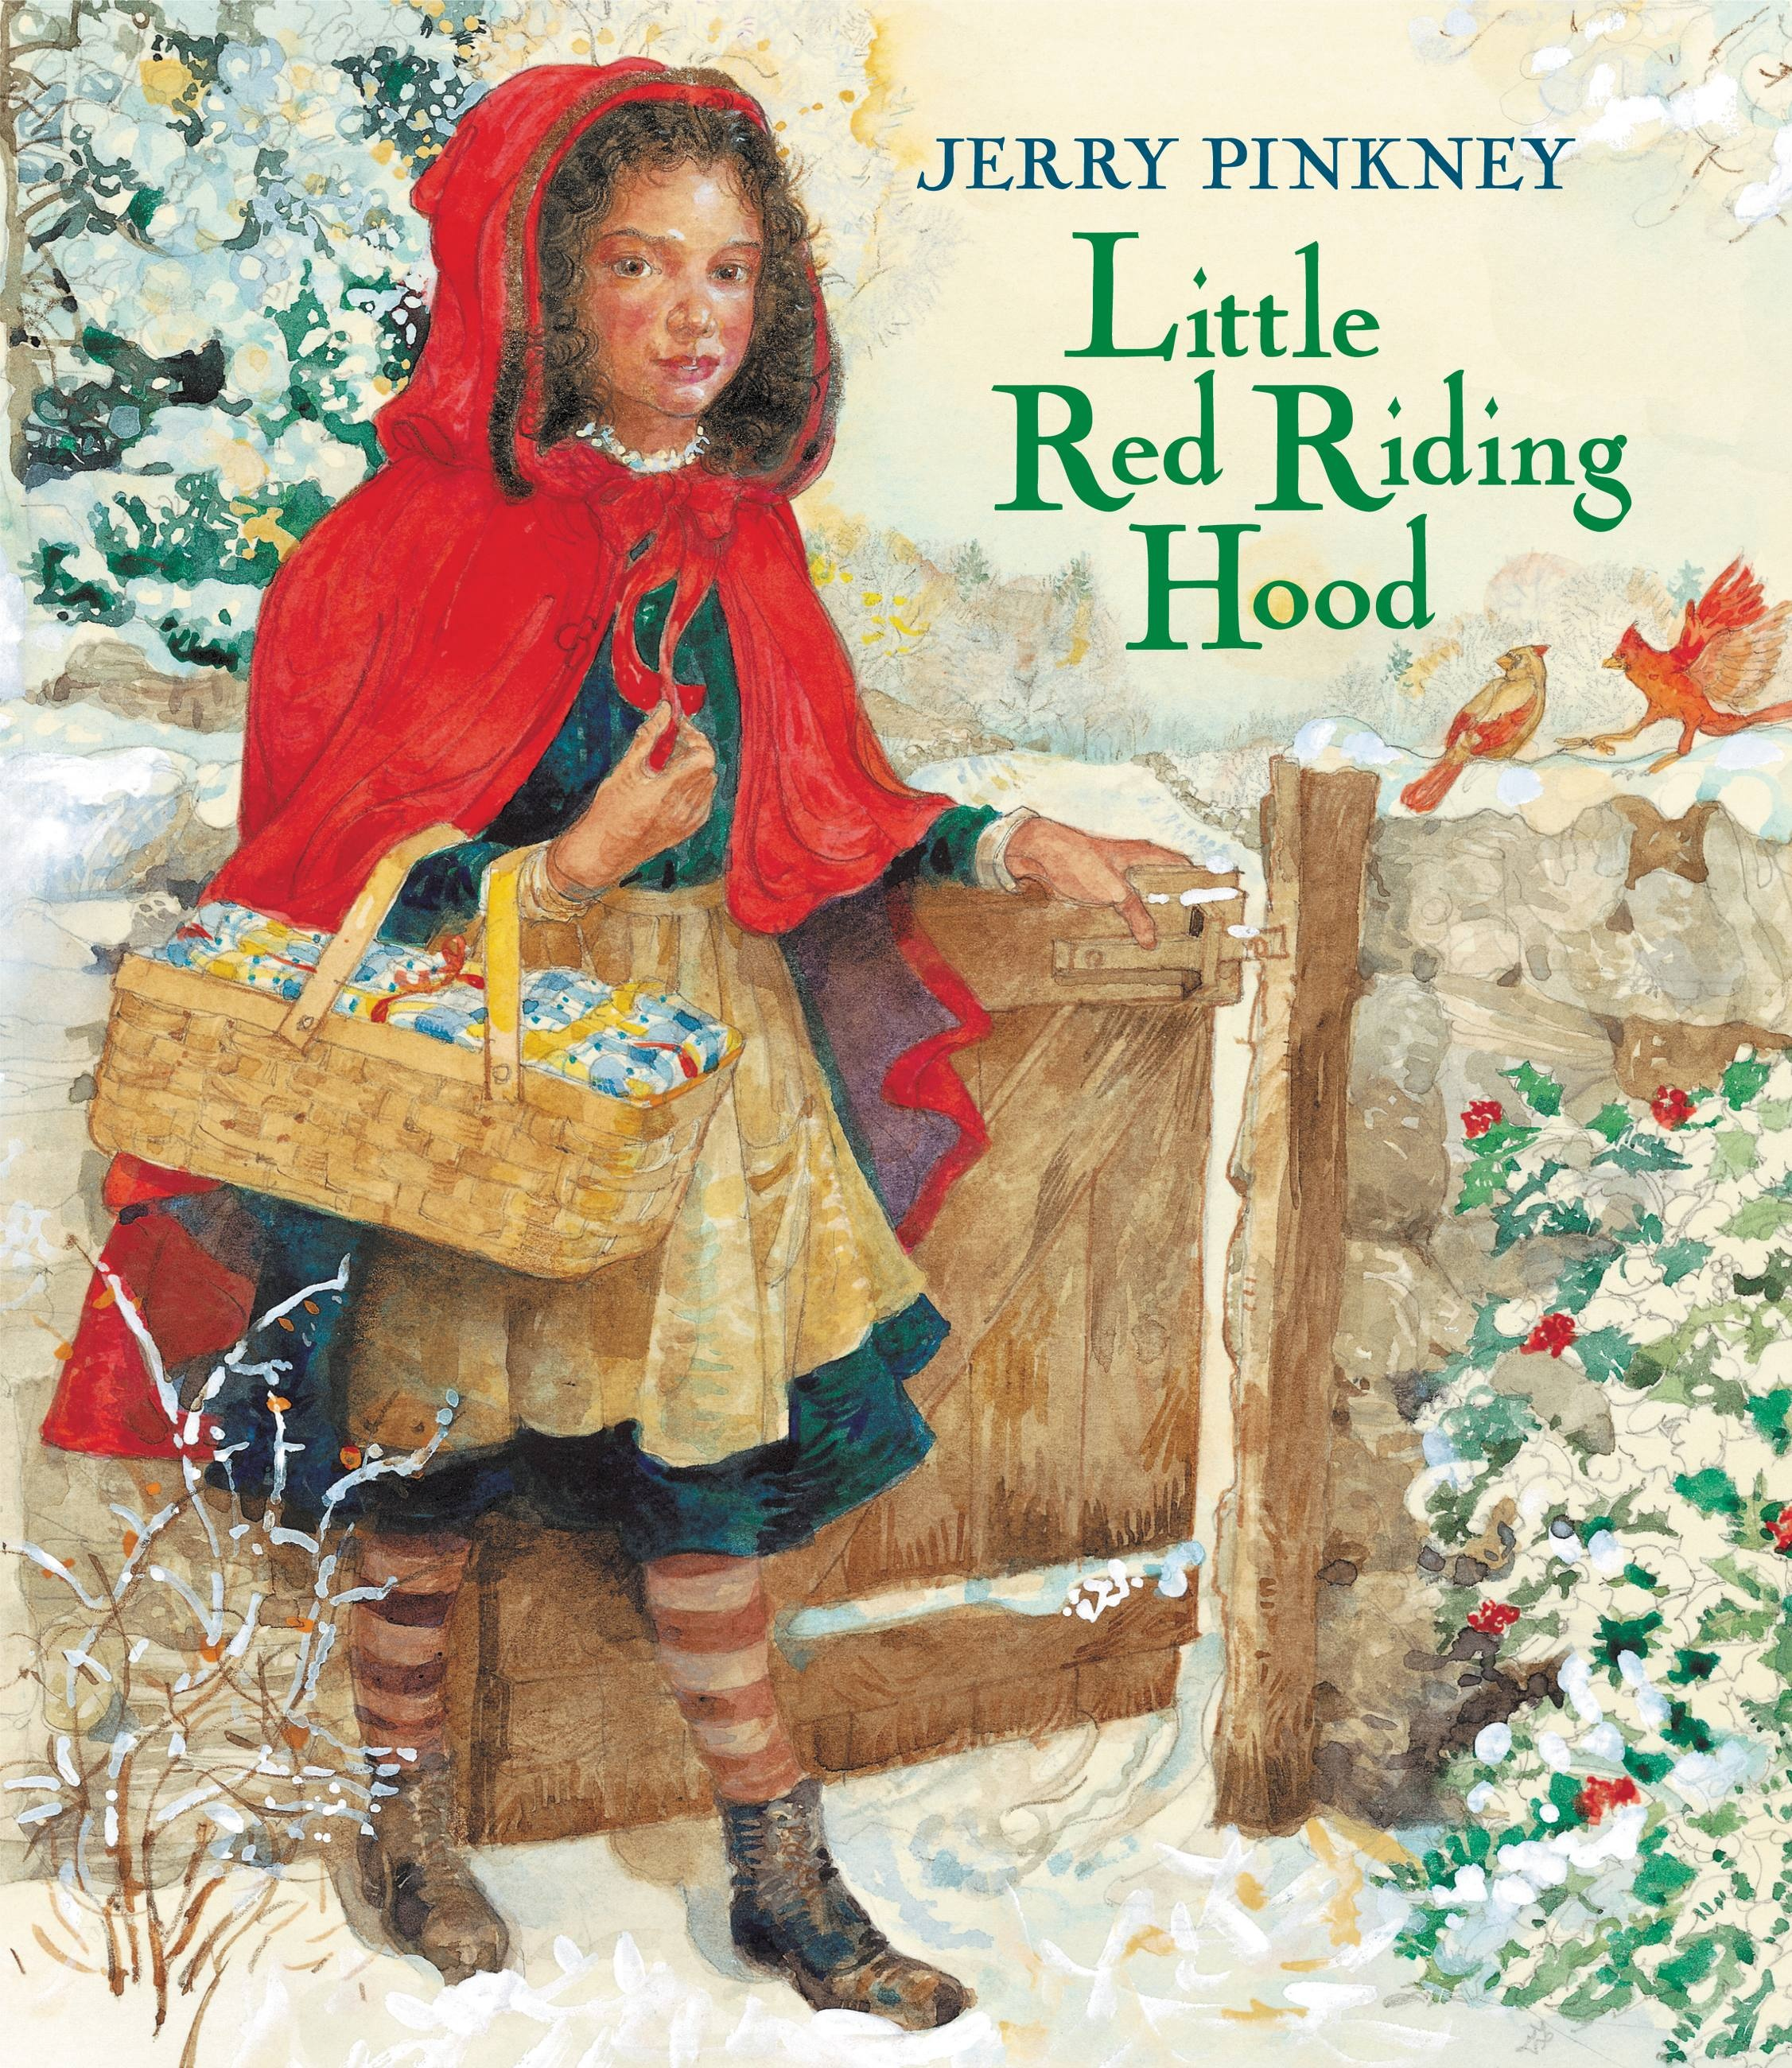 essays characters grimms little red riding hood Check out our top free essays on fairy tale essay to help you write little red riding hood's mother told her to take some food to essays, short stories, and.